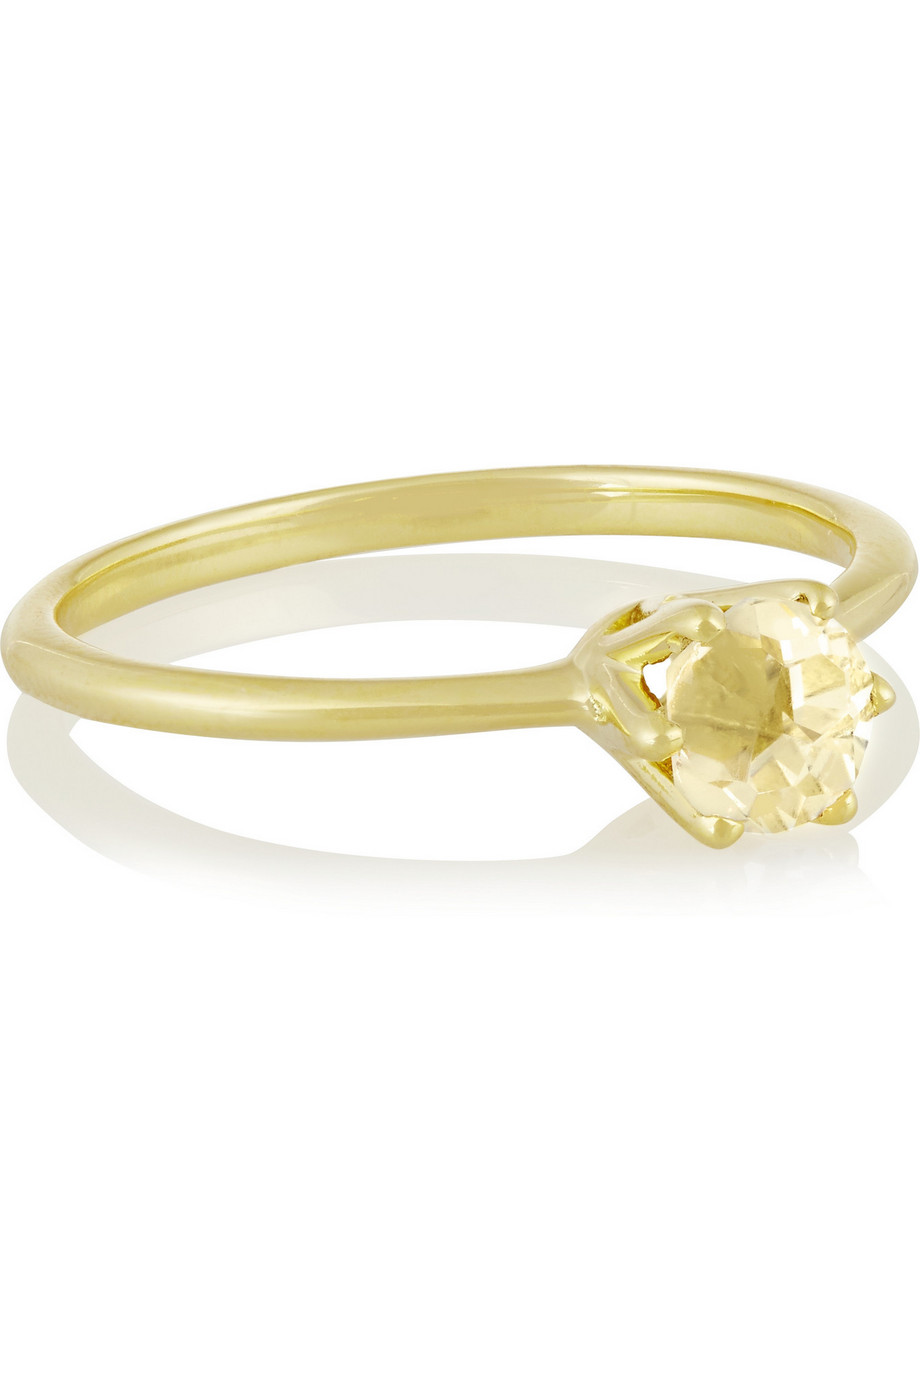 Ippolita Rock Candy 18-Karat Gold Quartz Ring, Pastel Yellow/Gold, Women's, Size: 6